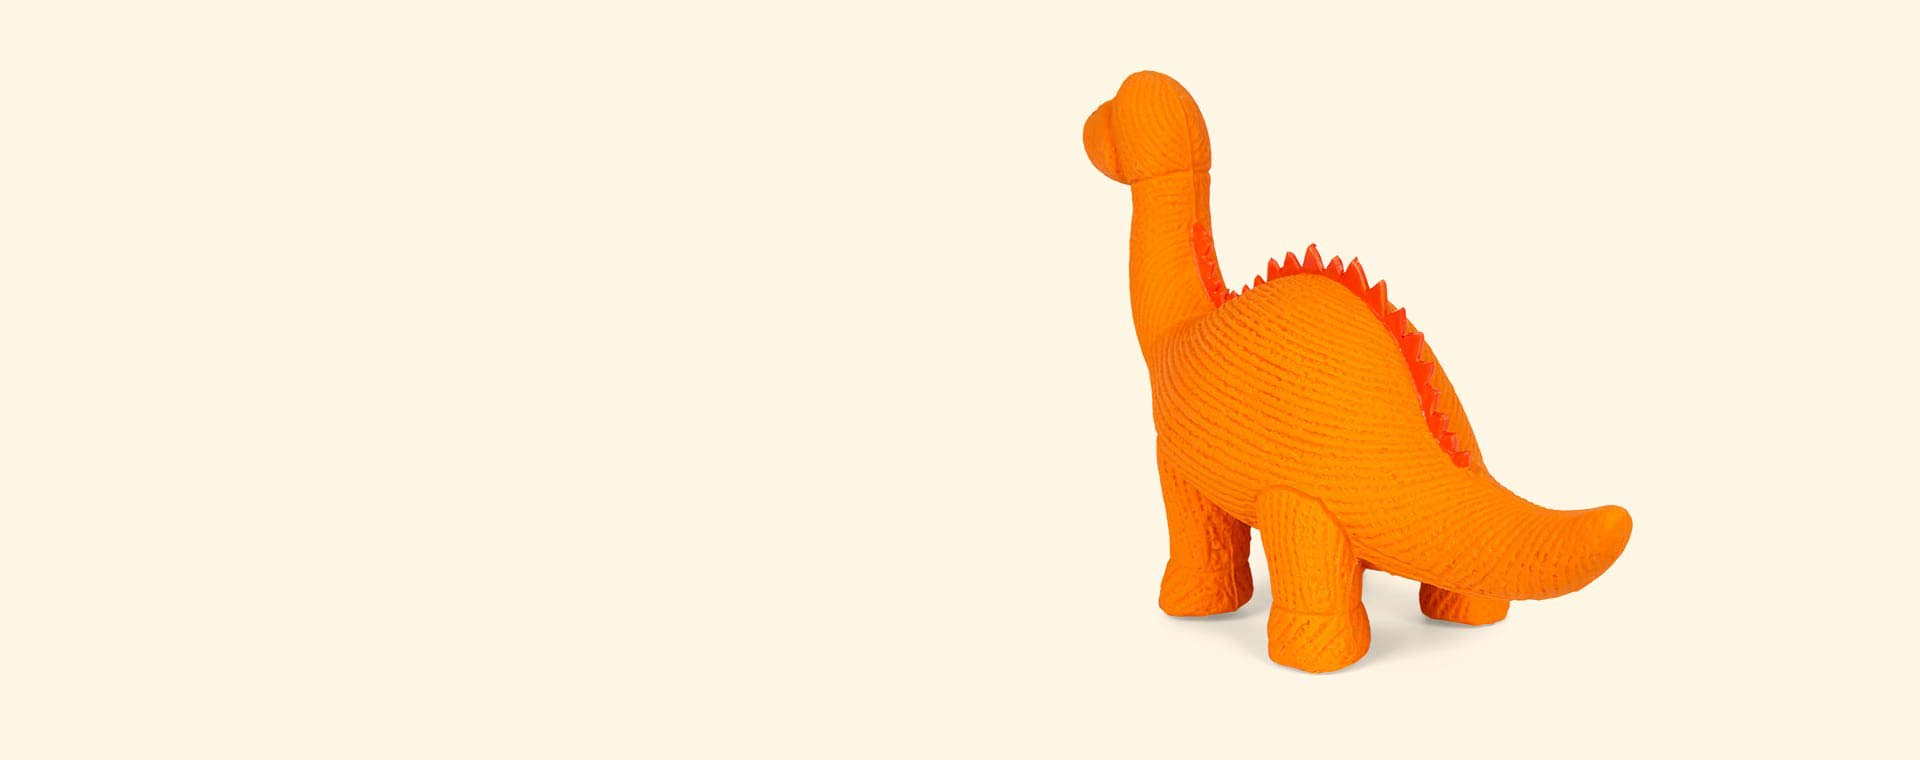 Diplodocus Best Years Ltd Diplodocus Teether